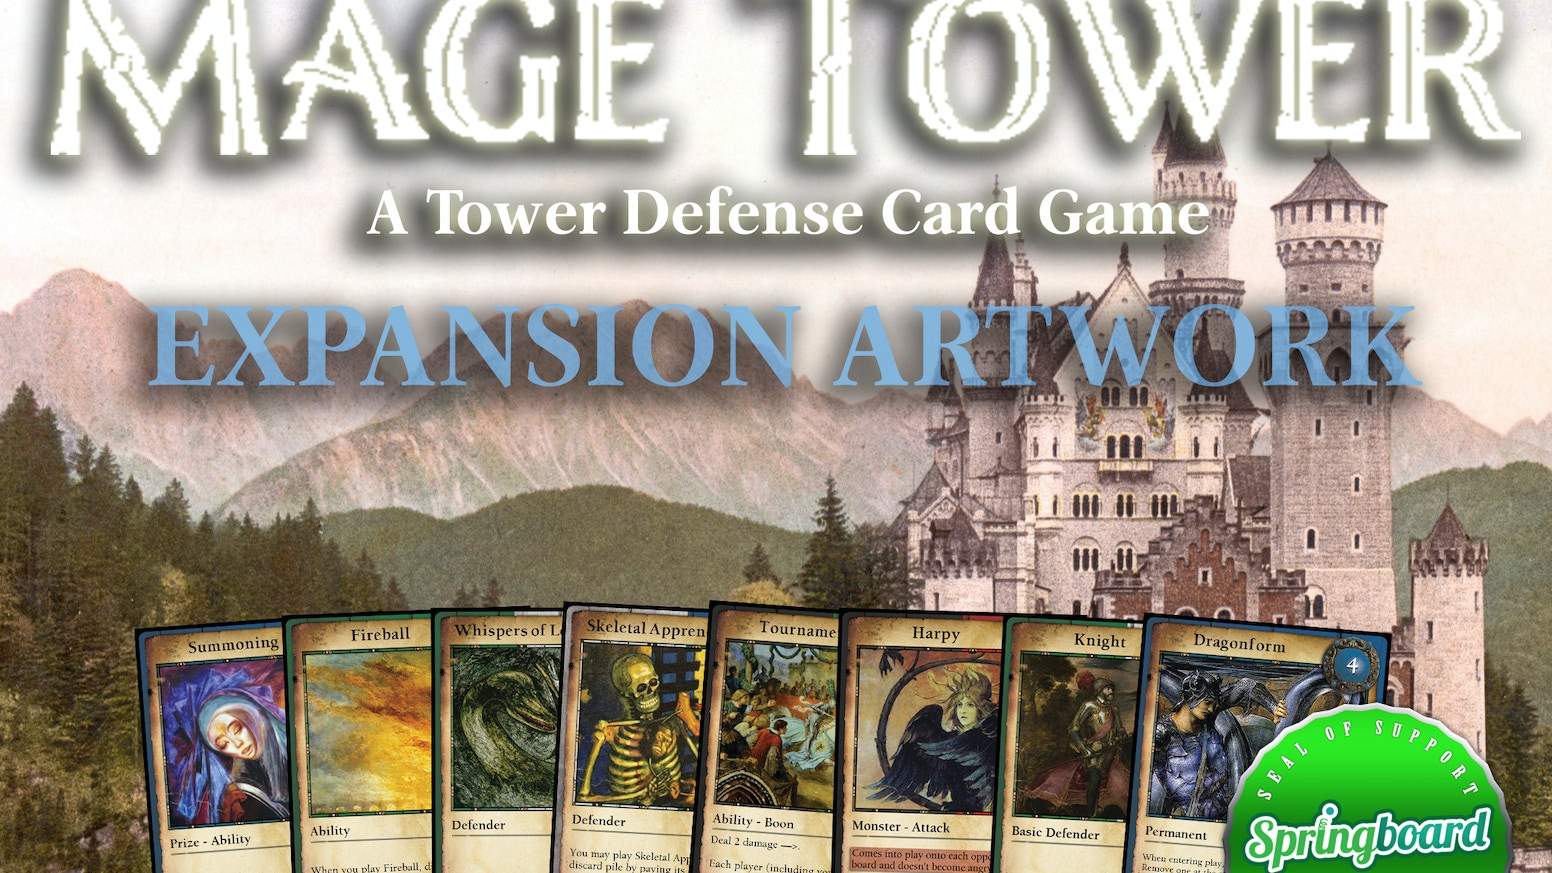 Mage Tower is a tower defense card game for 2-4 players.  This project is to raise money for artwork to develop an expansion.